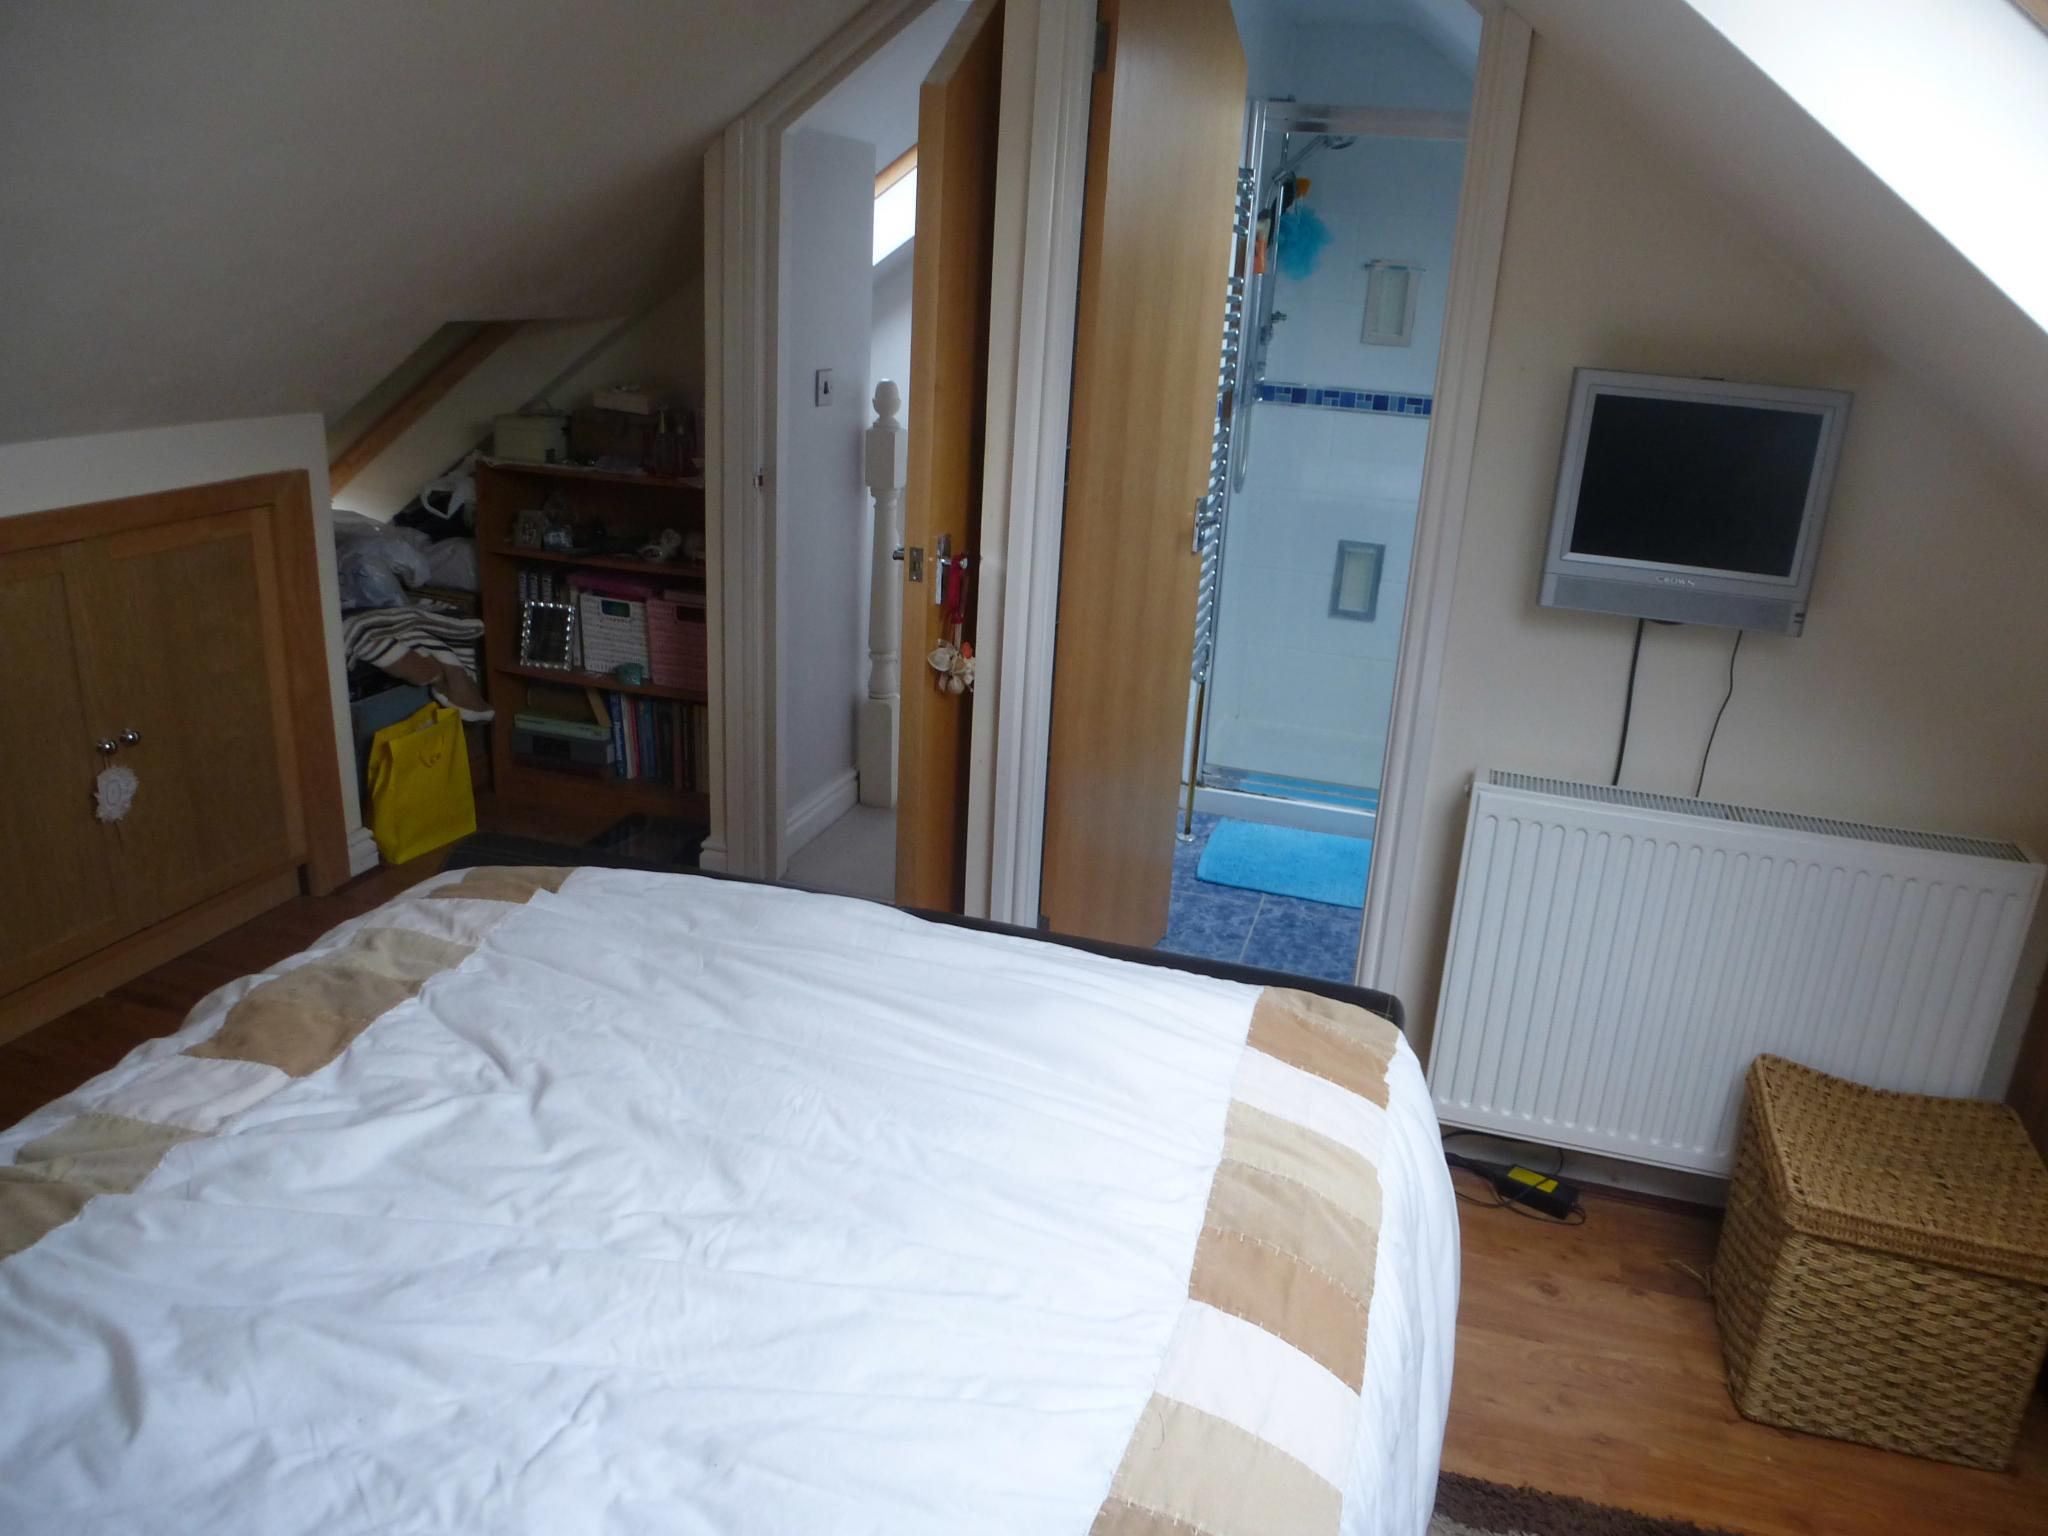 Image 2 of 3 of BEDROOM 1, on Accommodation Comprising for